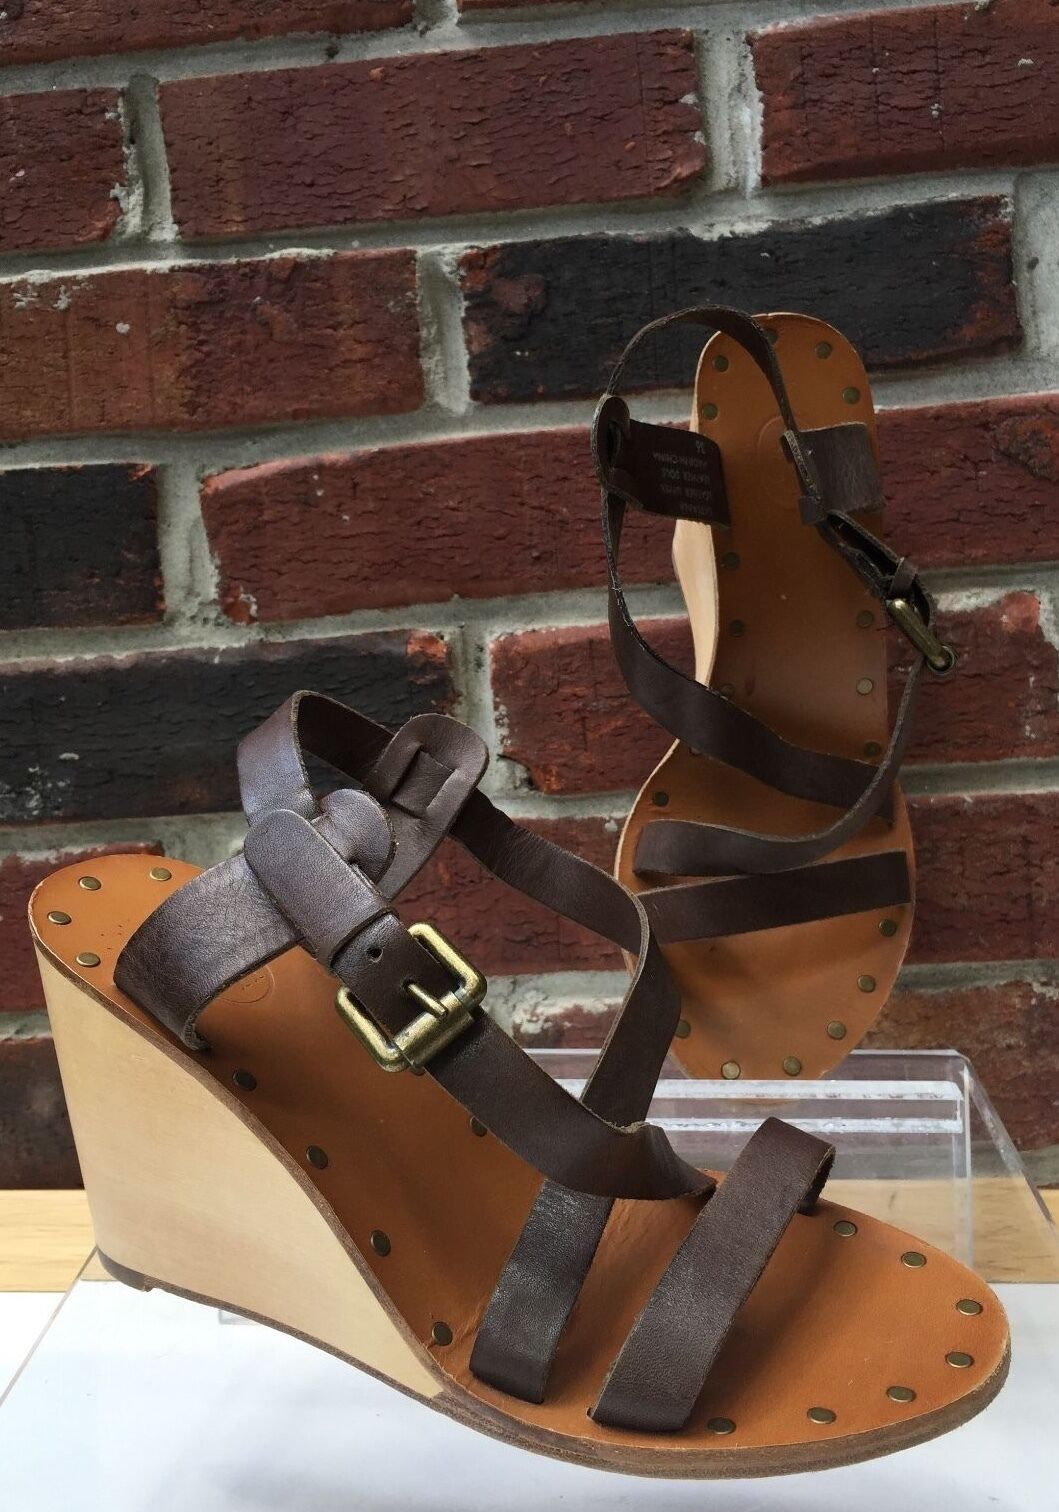 200 ASH Tatiana Platform Brown Leather Wood Wedge Strap Sandals 36 6